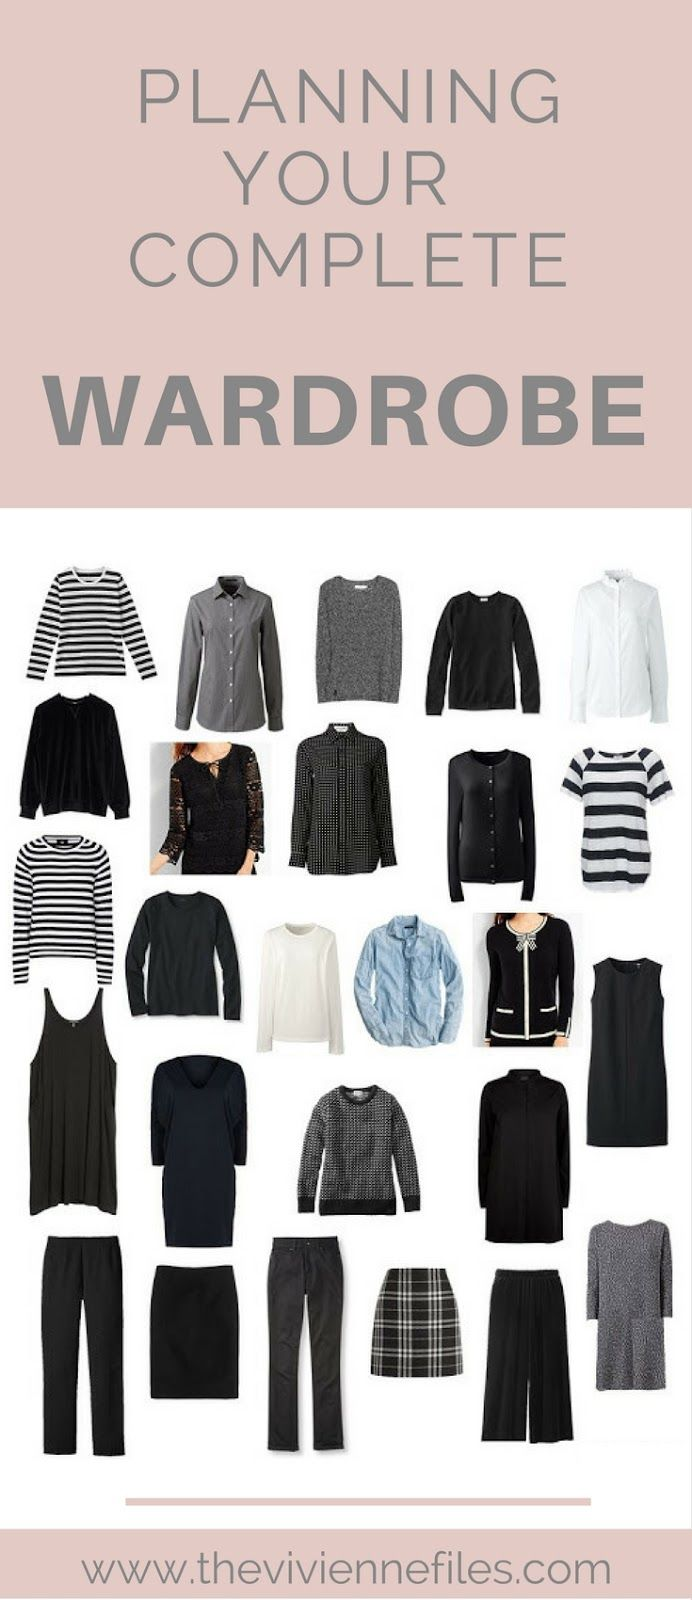 Planning Your Complete Wardrobe